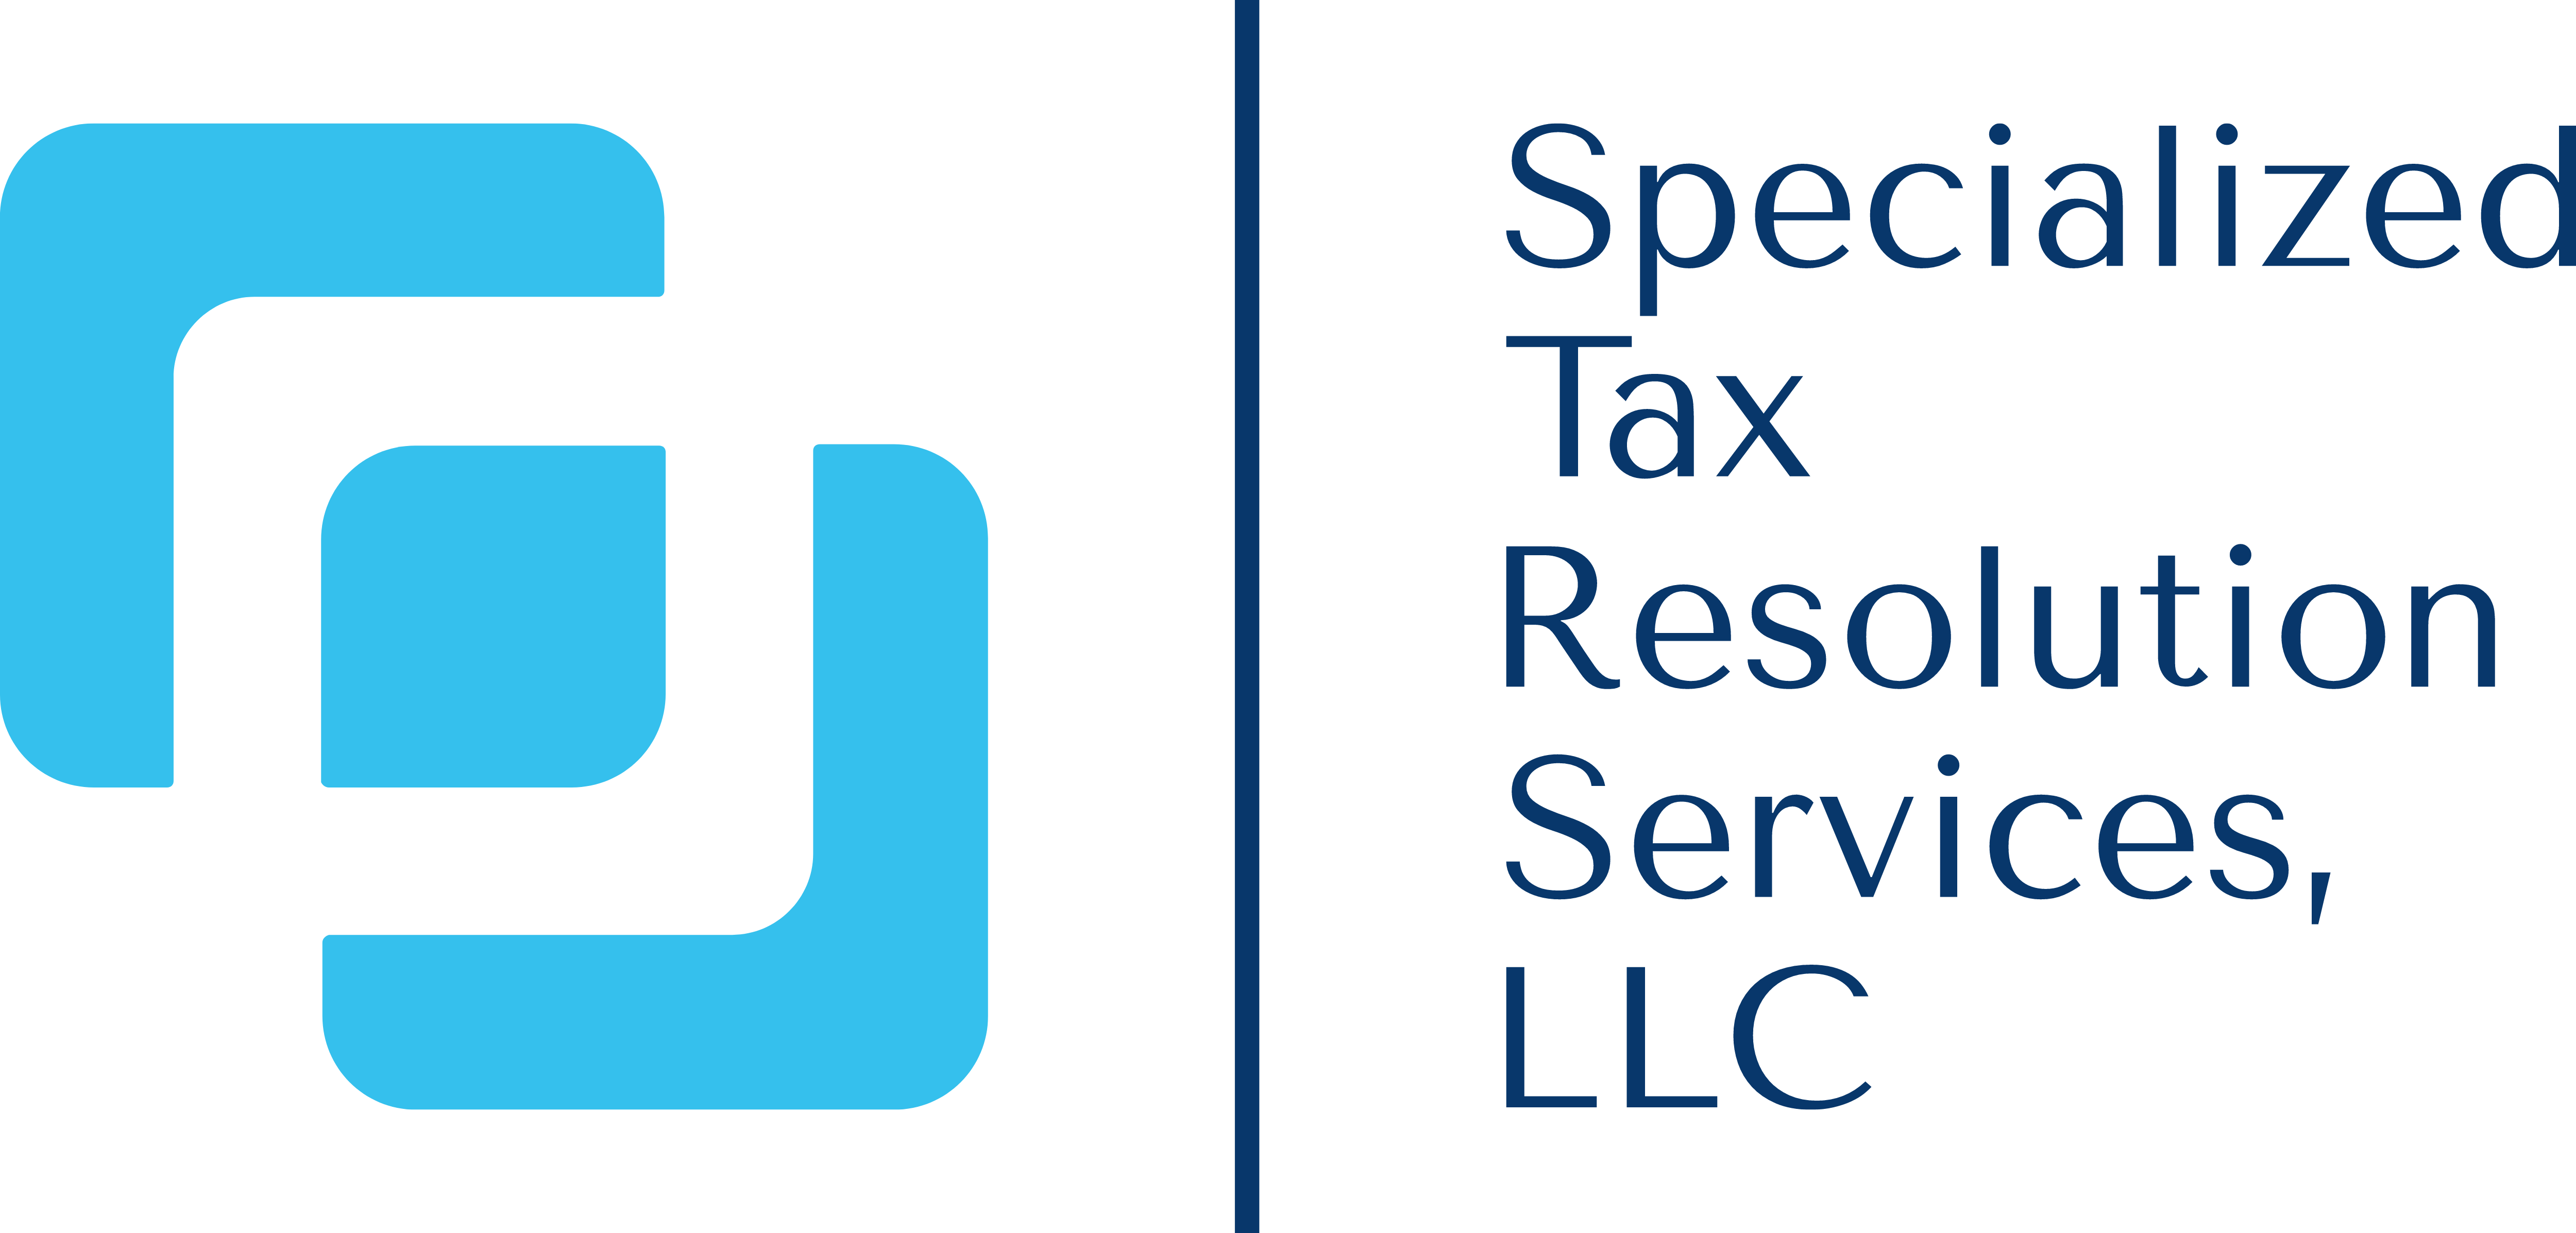 Specialized Tax Resolution Services, LLC